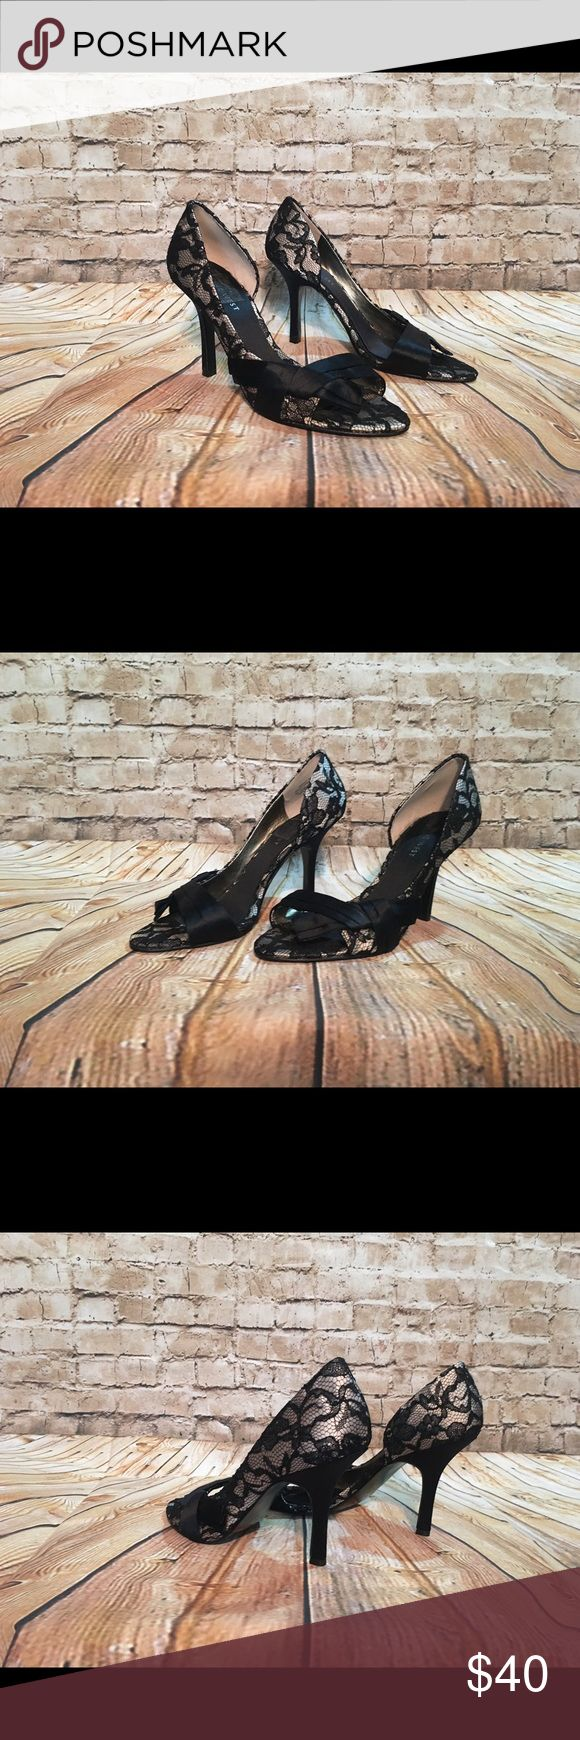 WOMEN'S NINE WEST HEELS SIZE 7.5M Lacy Stylish Heel. Nine West Size 7.5M Nine West Shoes Heels